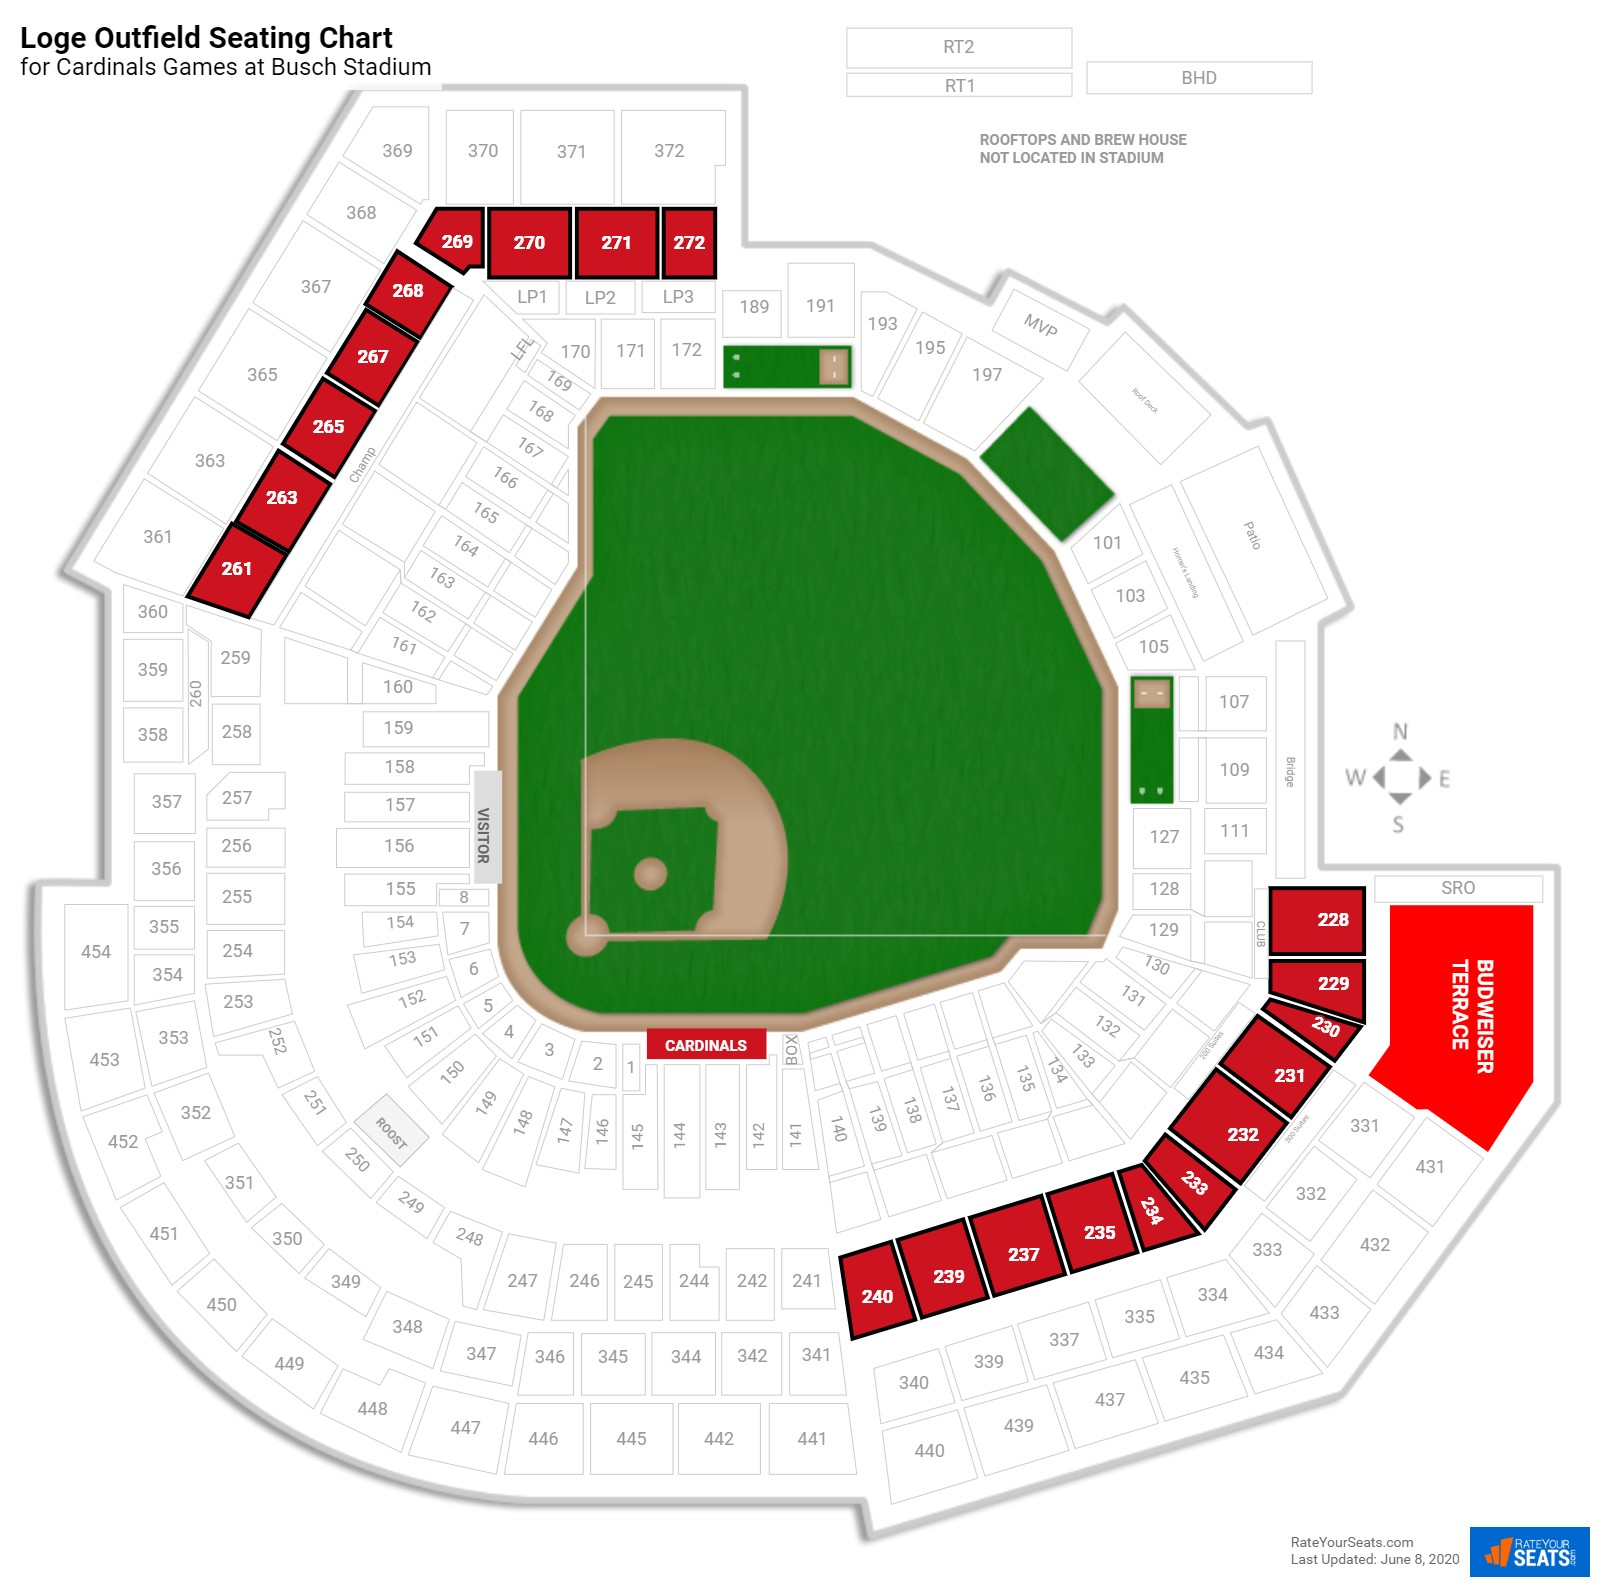 Busch Stadium Loge Outfield seating chart